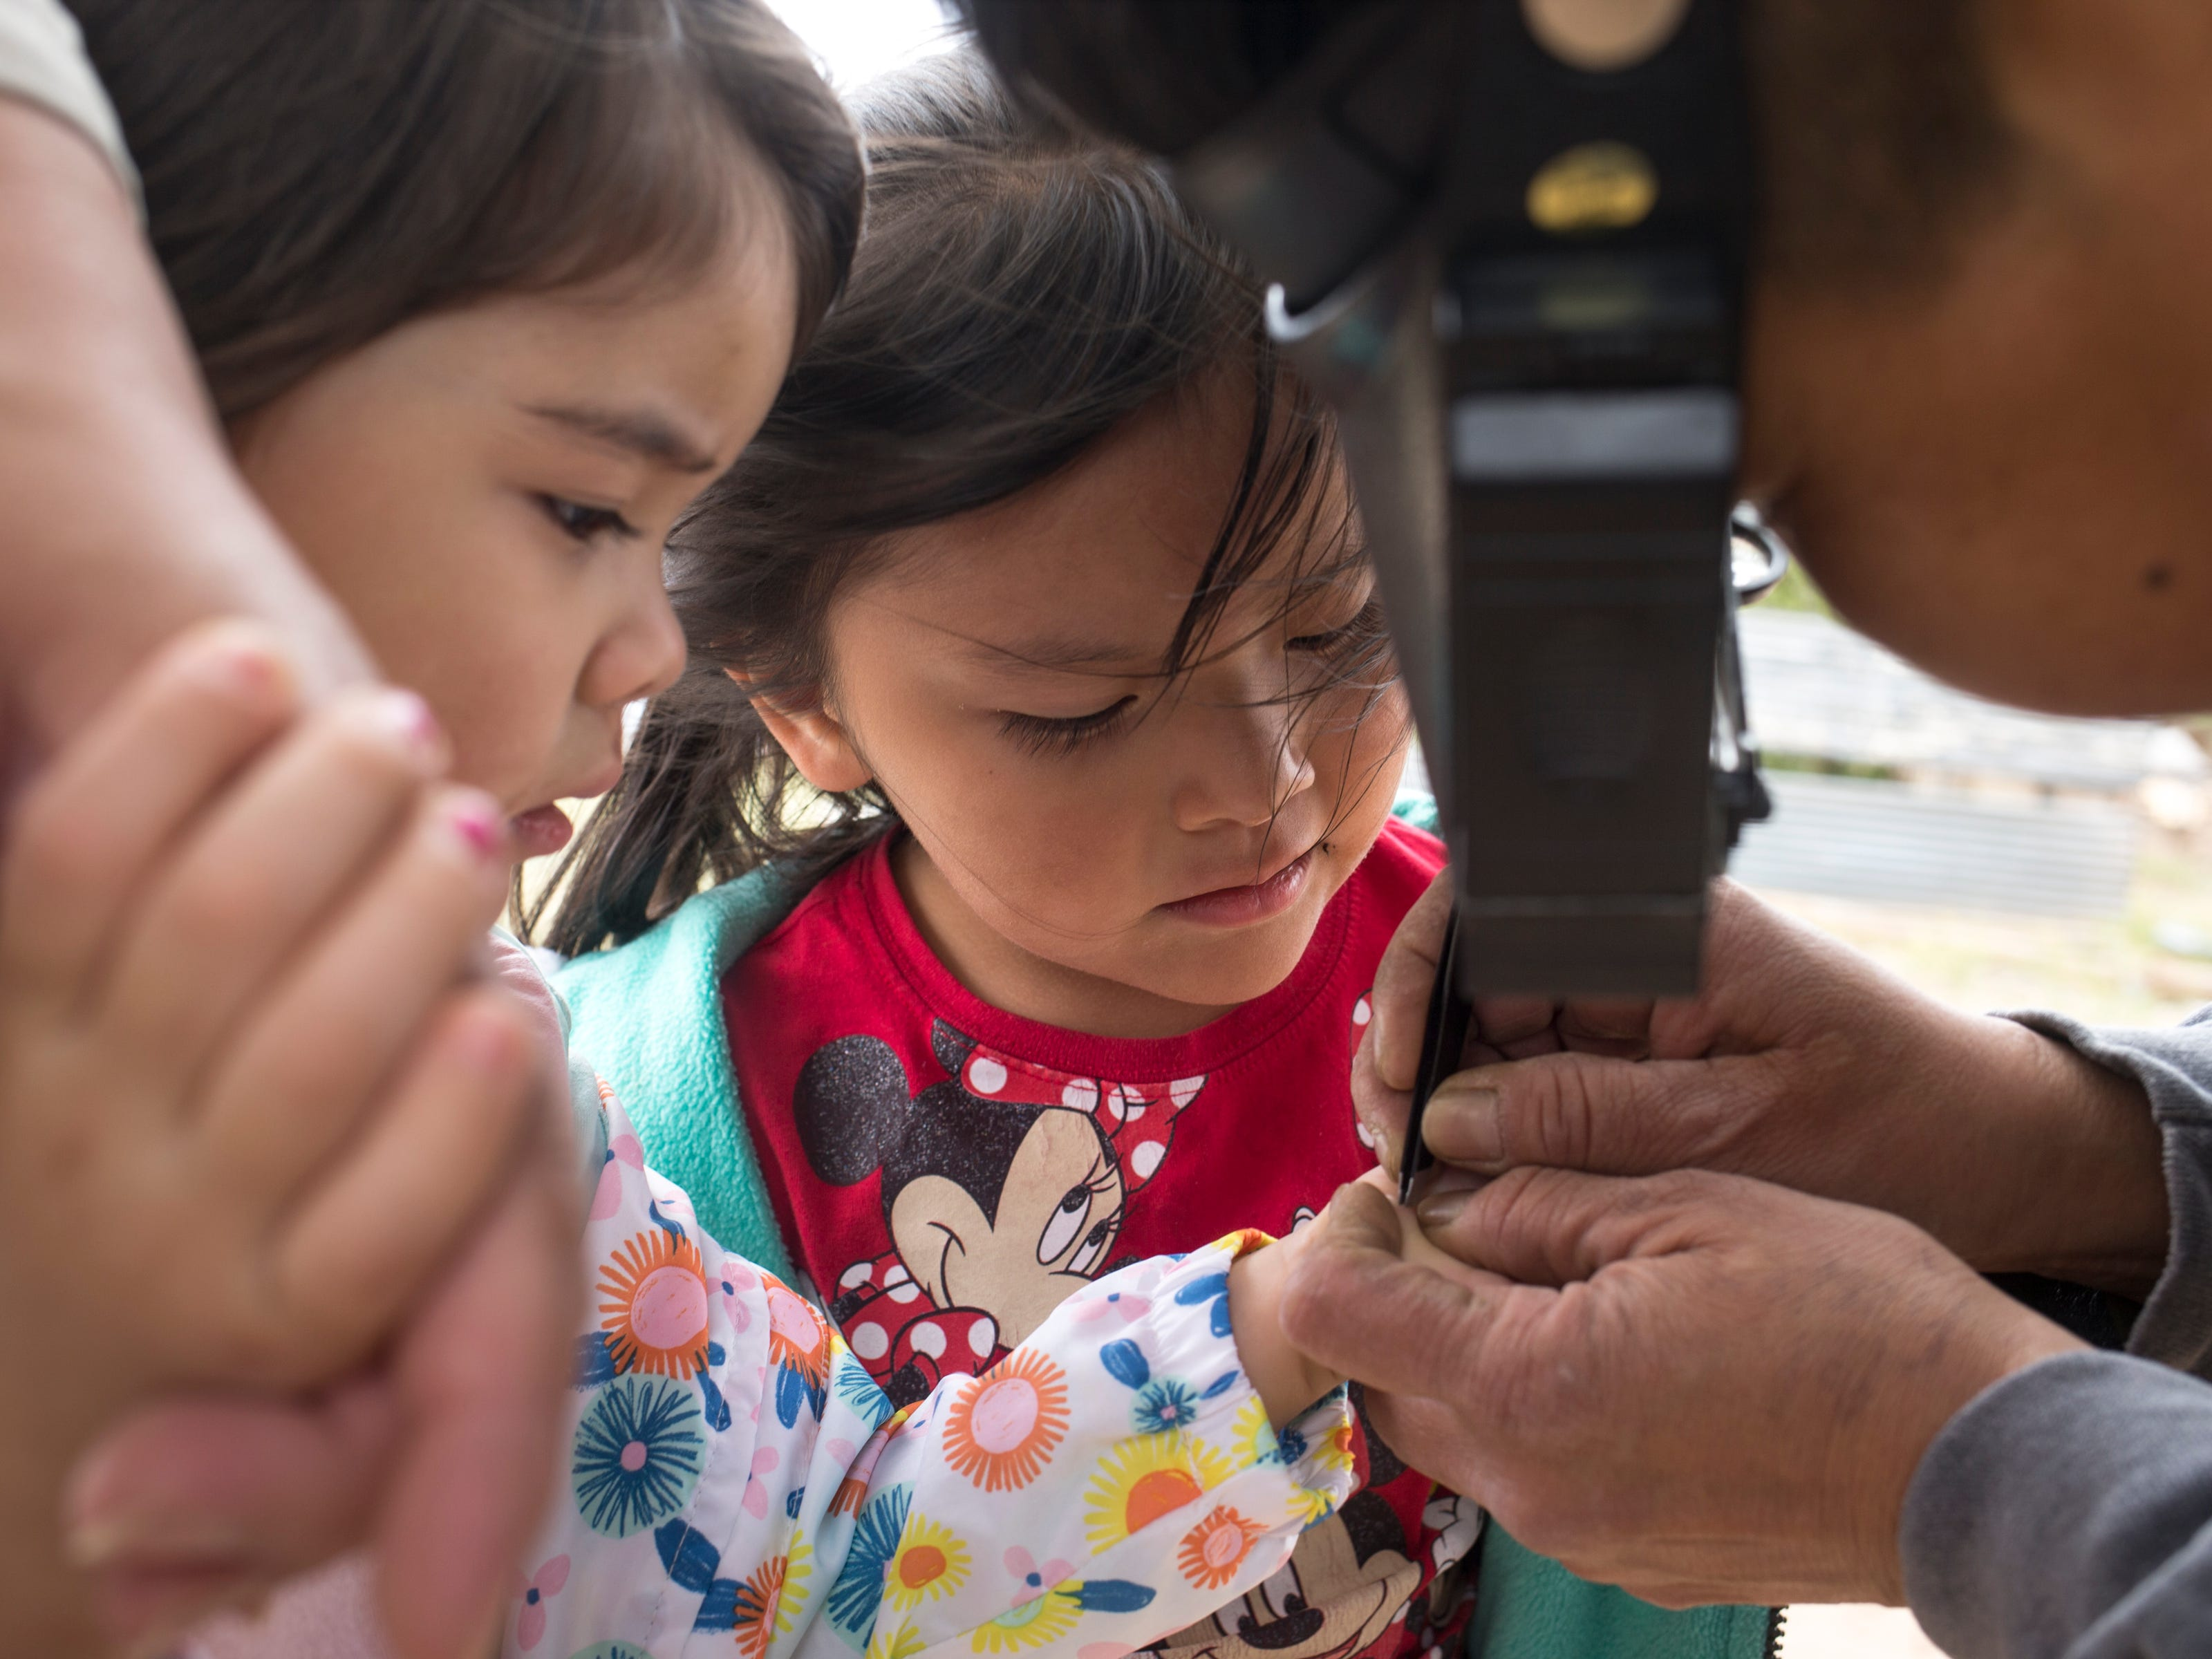 Terry Oliver (granddaughter, right) removes a sticker from the hand of Oona Ott (great-granddaughter, left), May 16, 2019, on the Begaye family farm in the Salt Water Canyon, east of Many Farms, Ariz. Looking on is Zara Oliver (great-granddaughter, center).